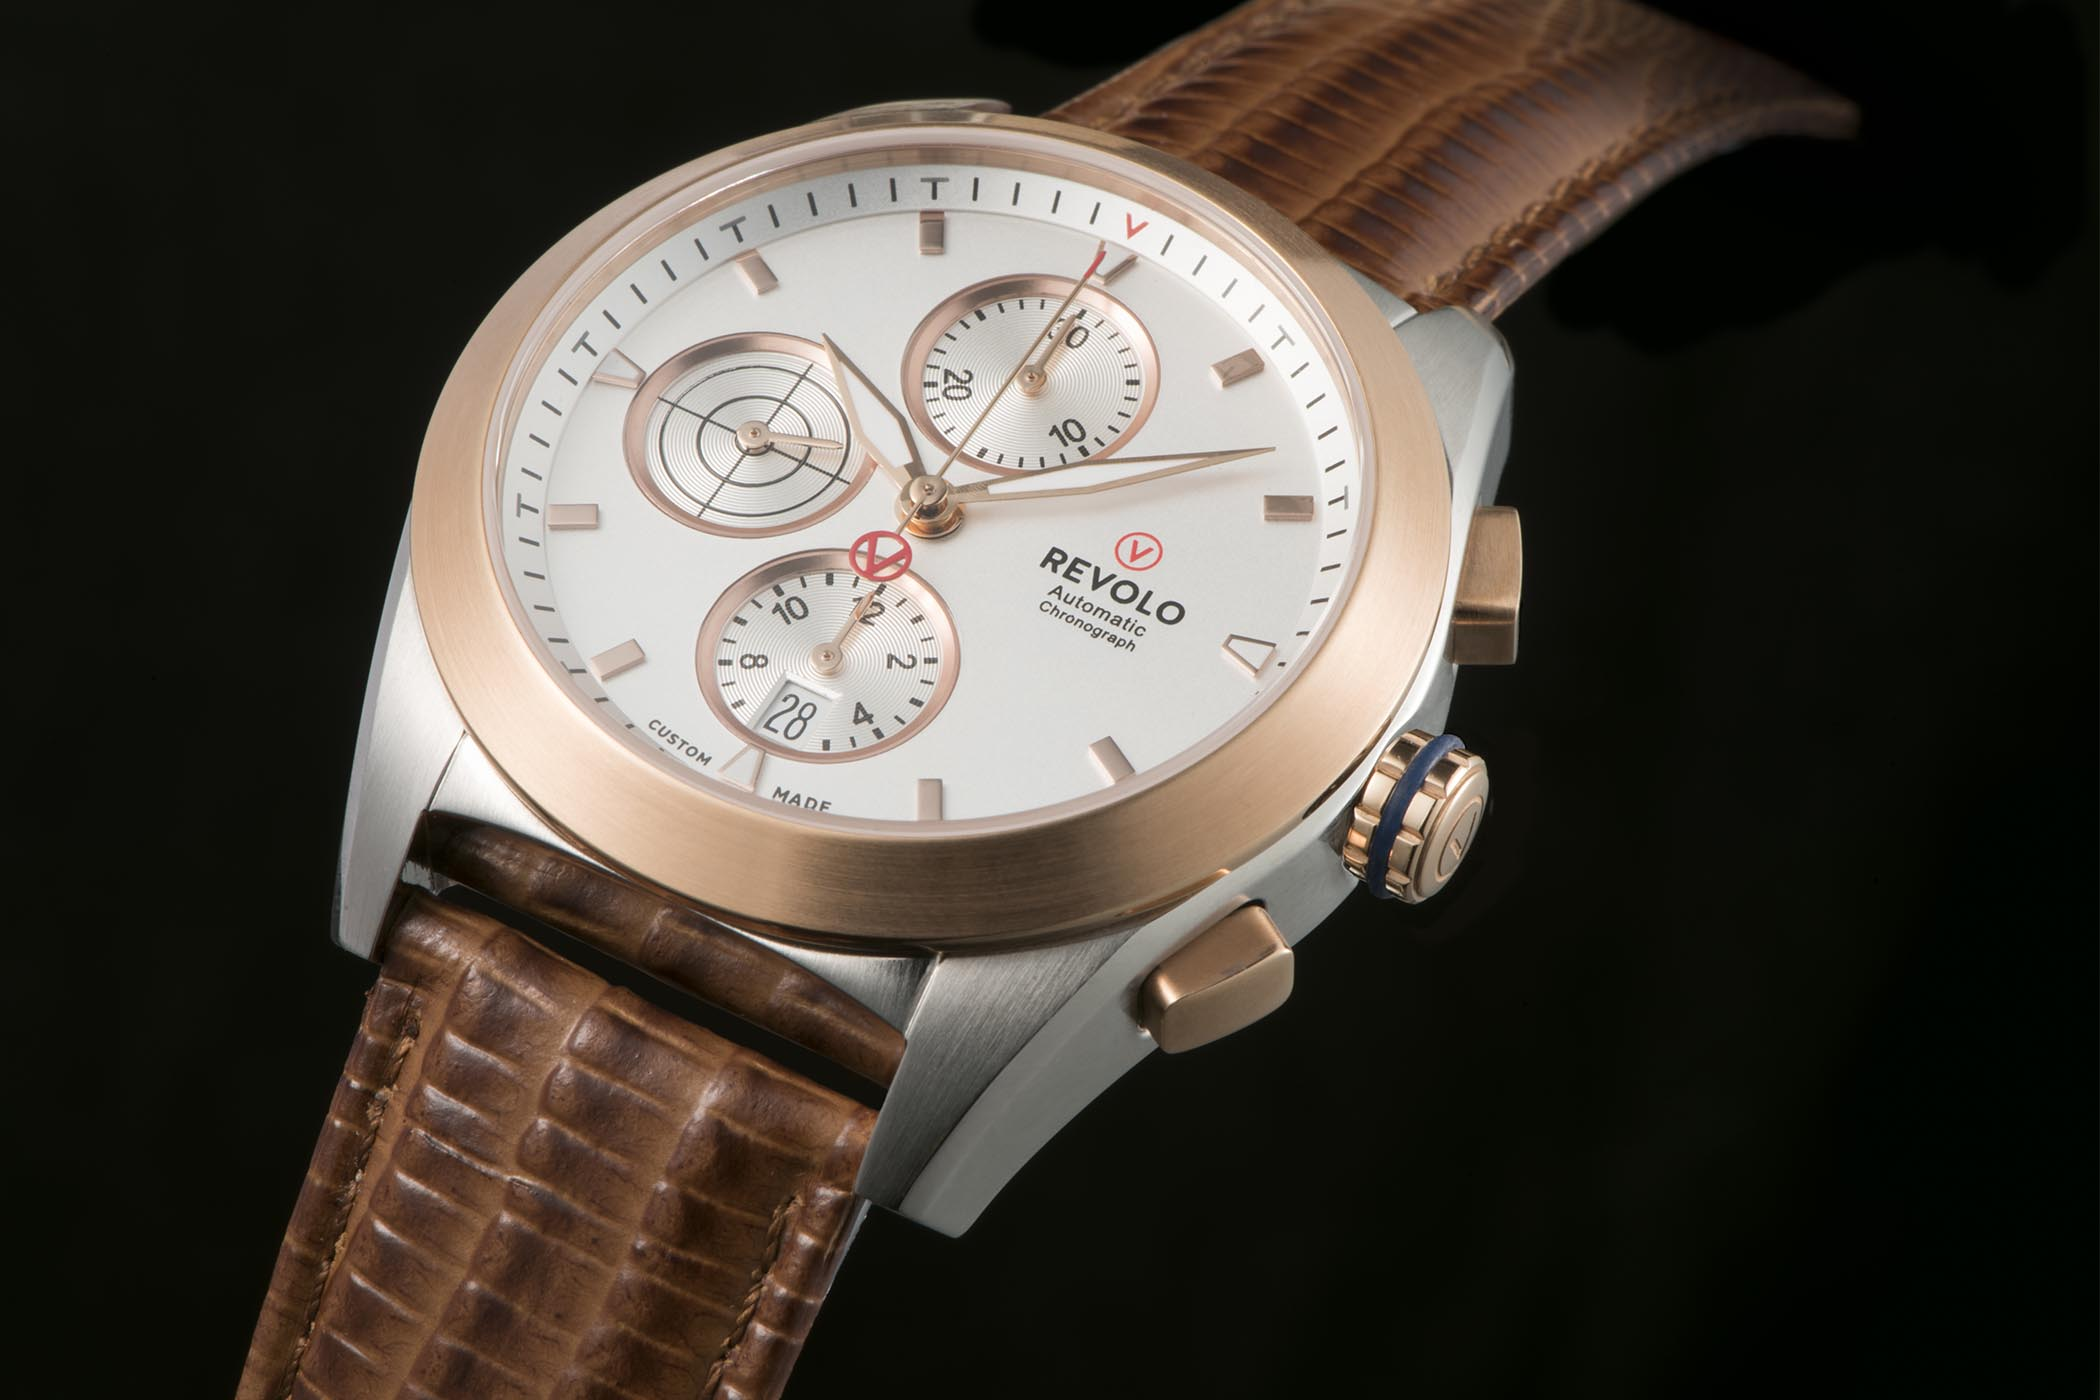 Revolo Chronograph Fully Customizable Watches